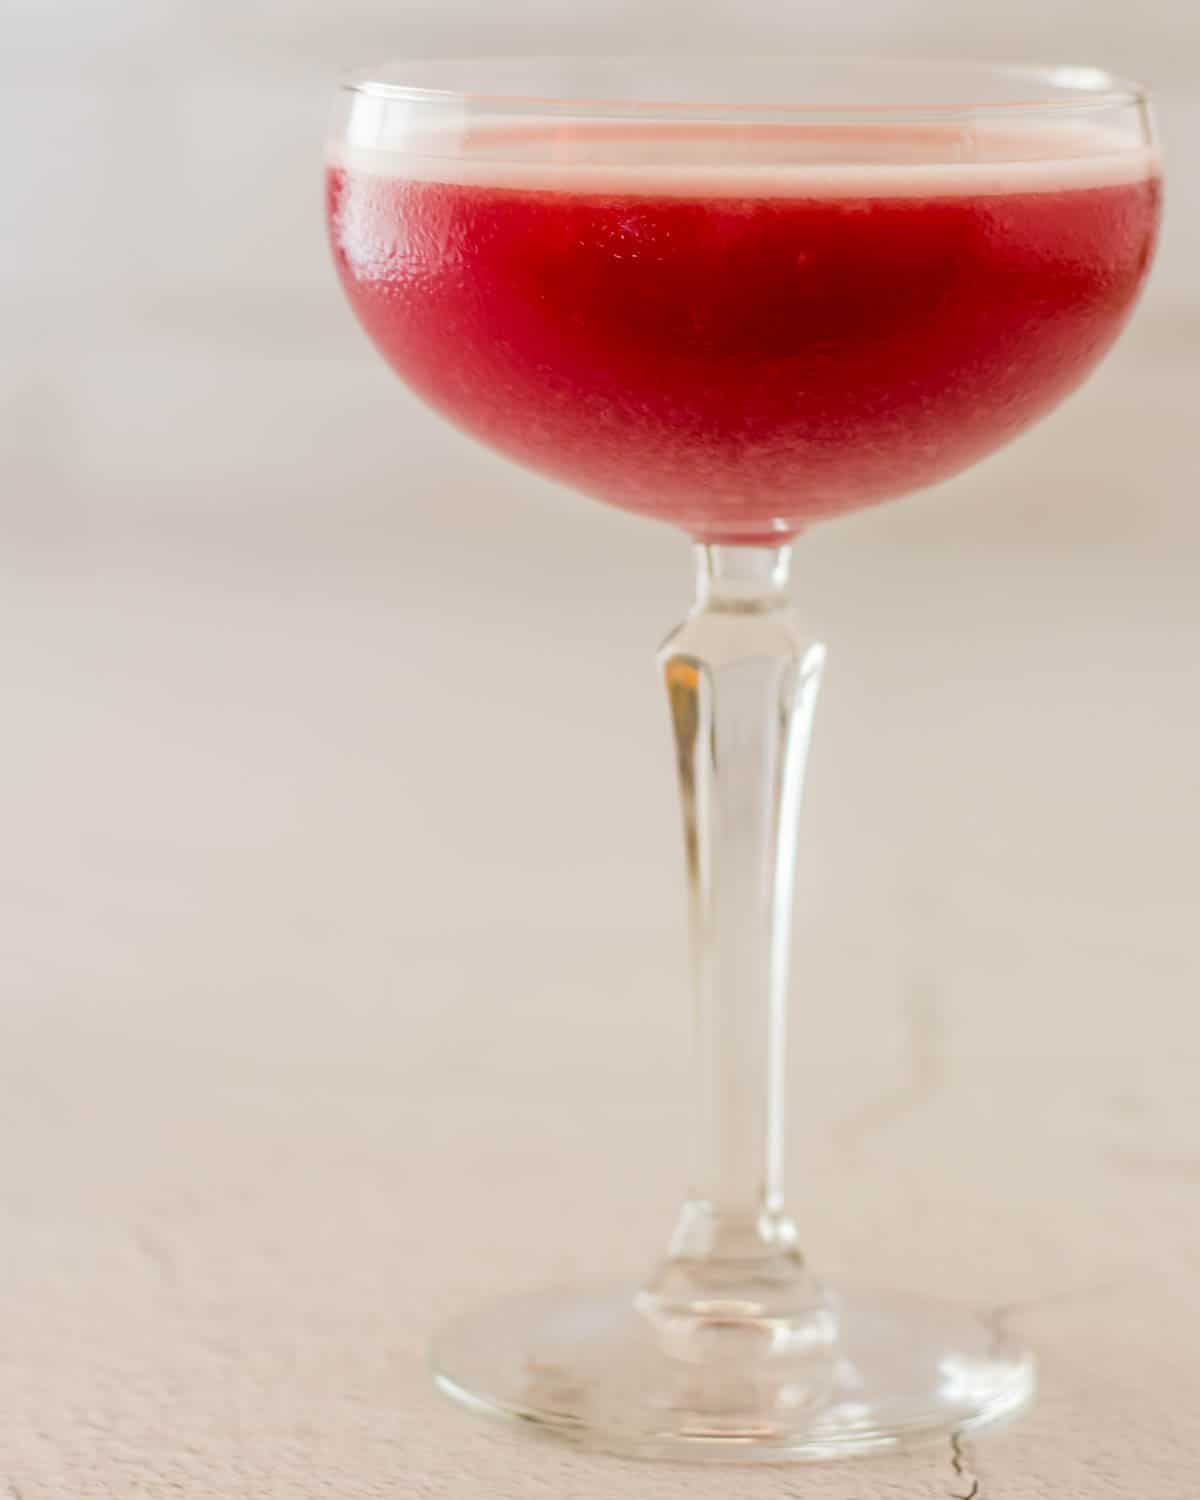 A close up of a coupe glass with gorgeous spiced plum pisco sour on a white background.